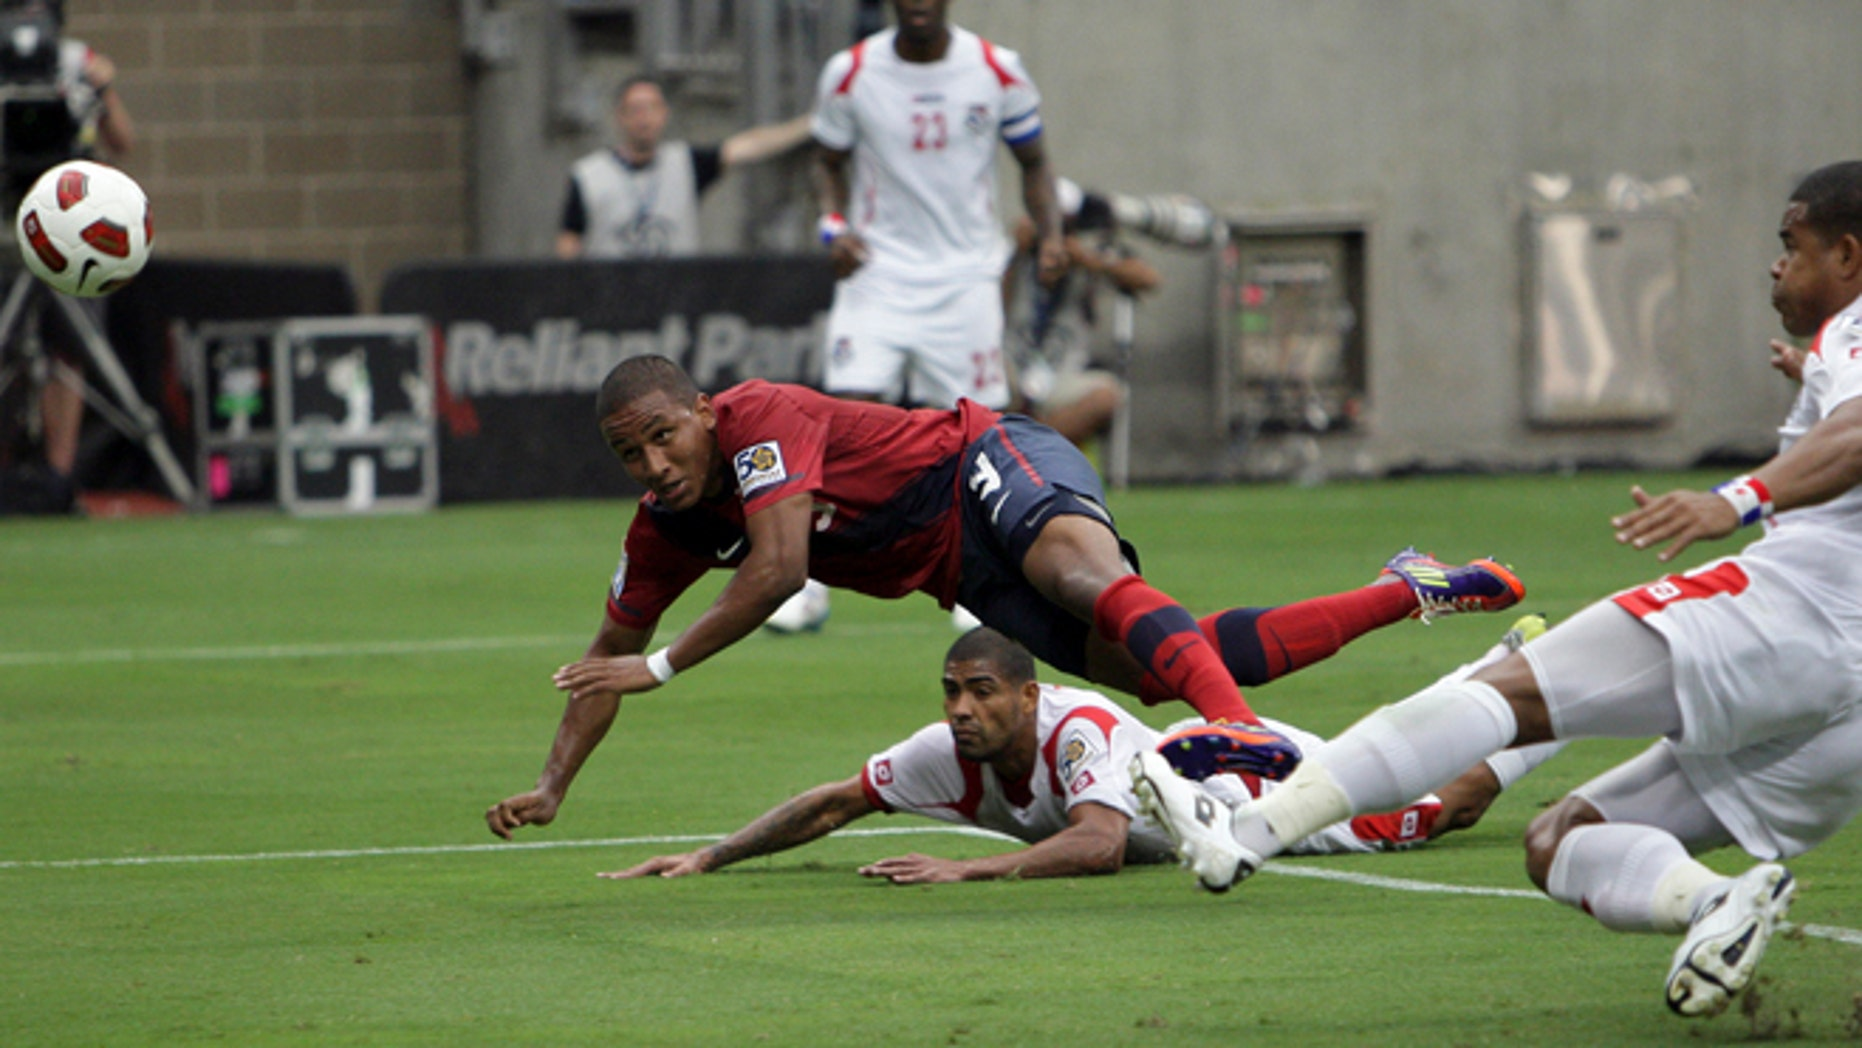 HOUSTON - JUNE 22:  Juan Agudelo #9 of the U.S.A. puts a header on goal in the first half as Roman Torres #5 of Panama is late defending on the play in the first half at Reliant Stadium on June 22, 2011 in Houston, Texas.  (Photo by Bob Levey/Getty Images)